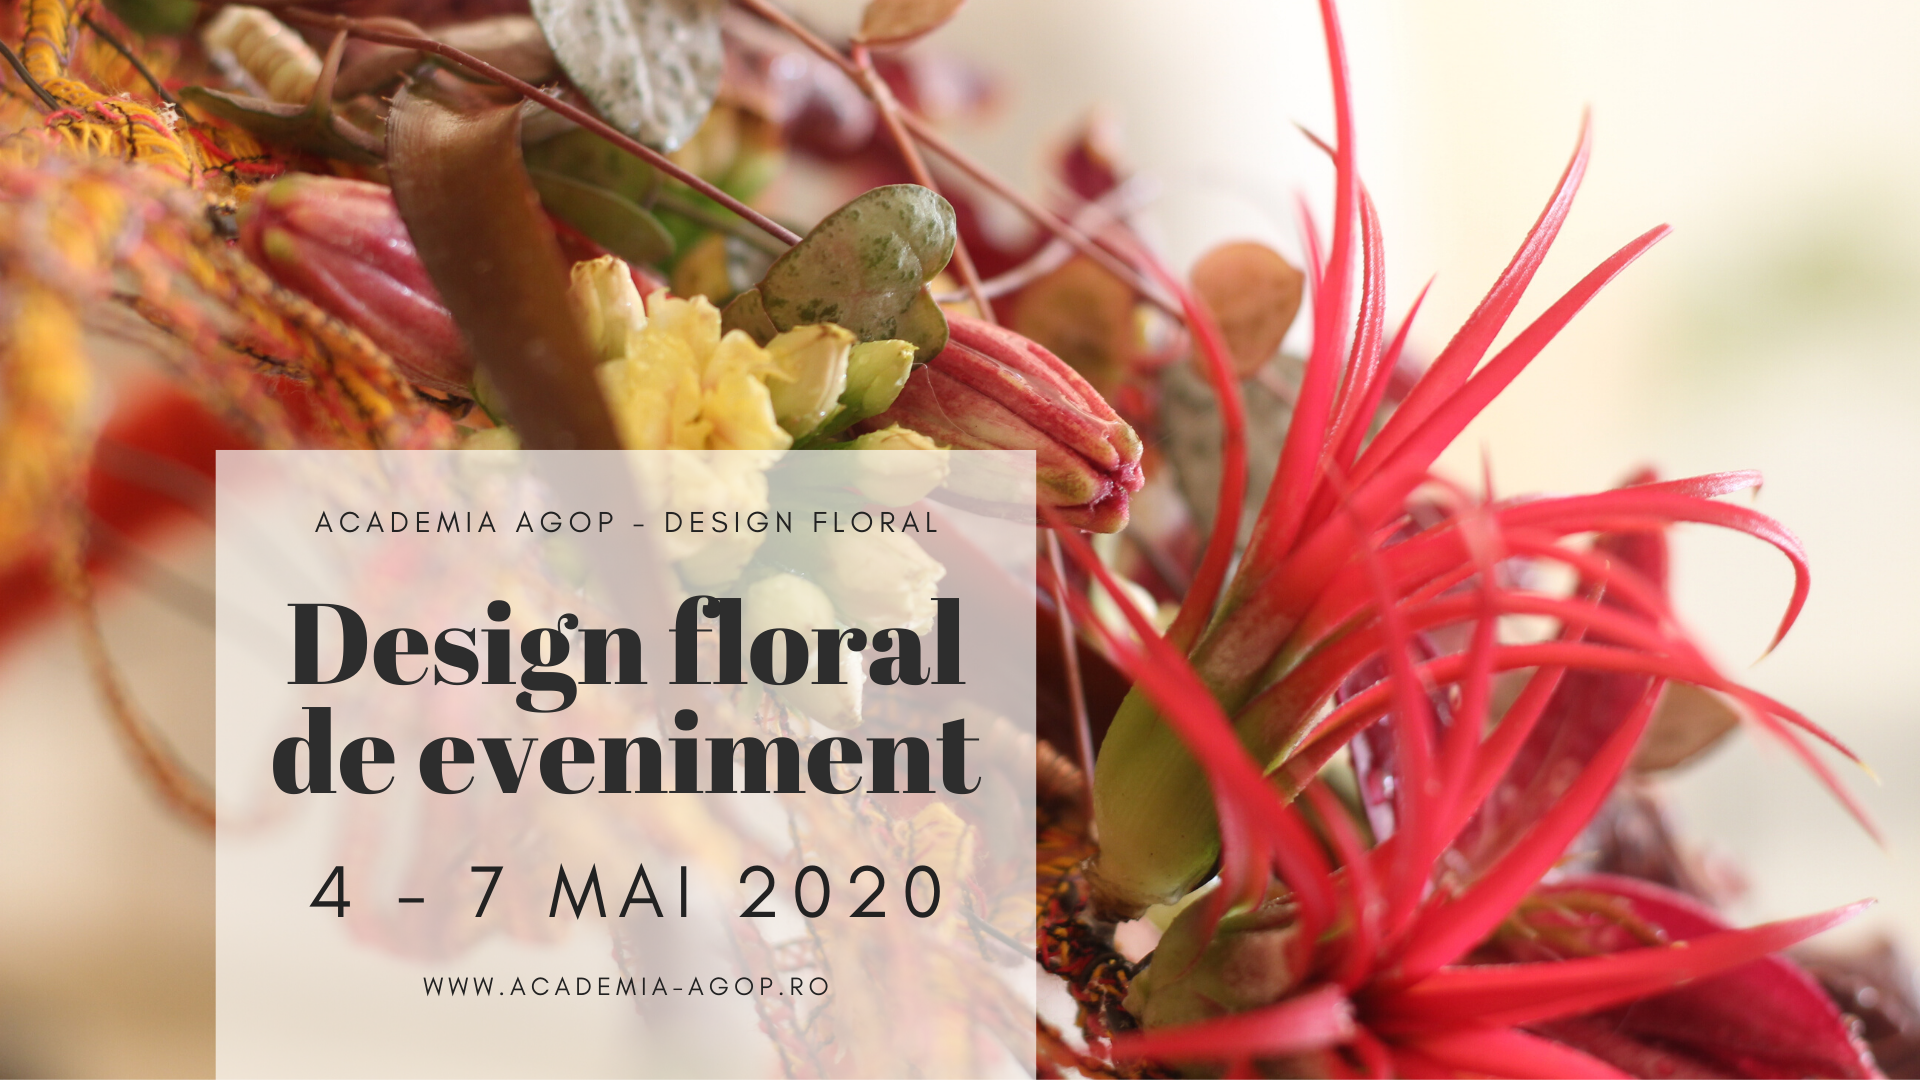 Modulul V: Design floral de eveniment 4 - 7 Mai 2020